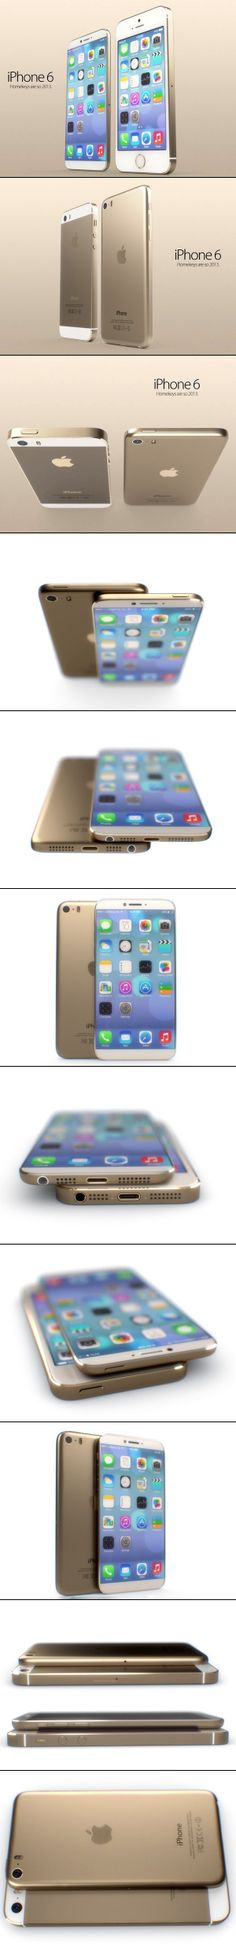 Here is a first look at the iPhone 6, which comes without a home button, but features a larger 4.8in. screen.